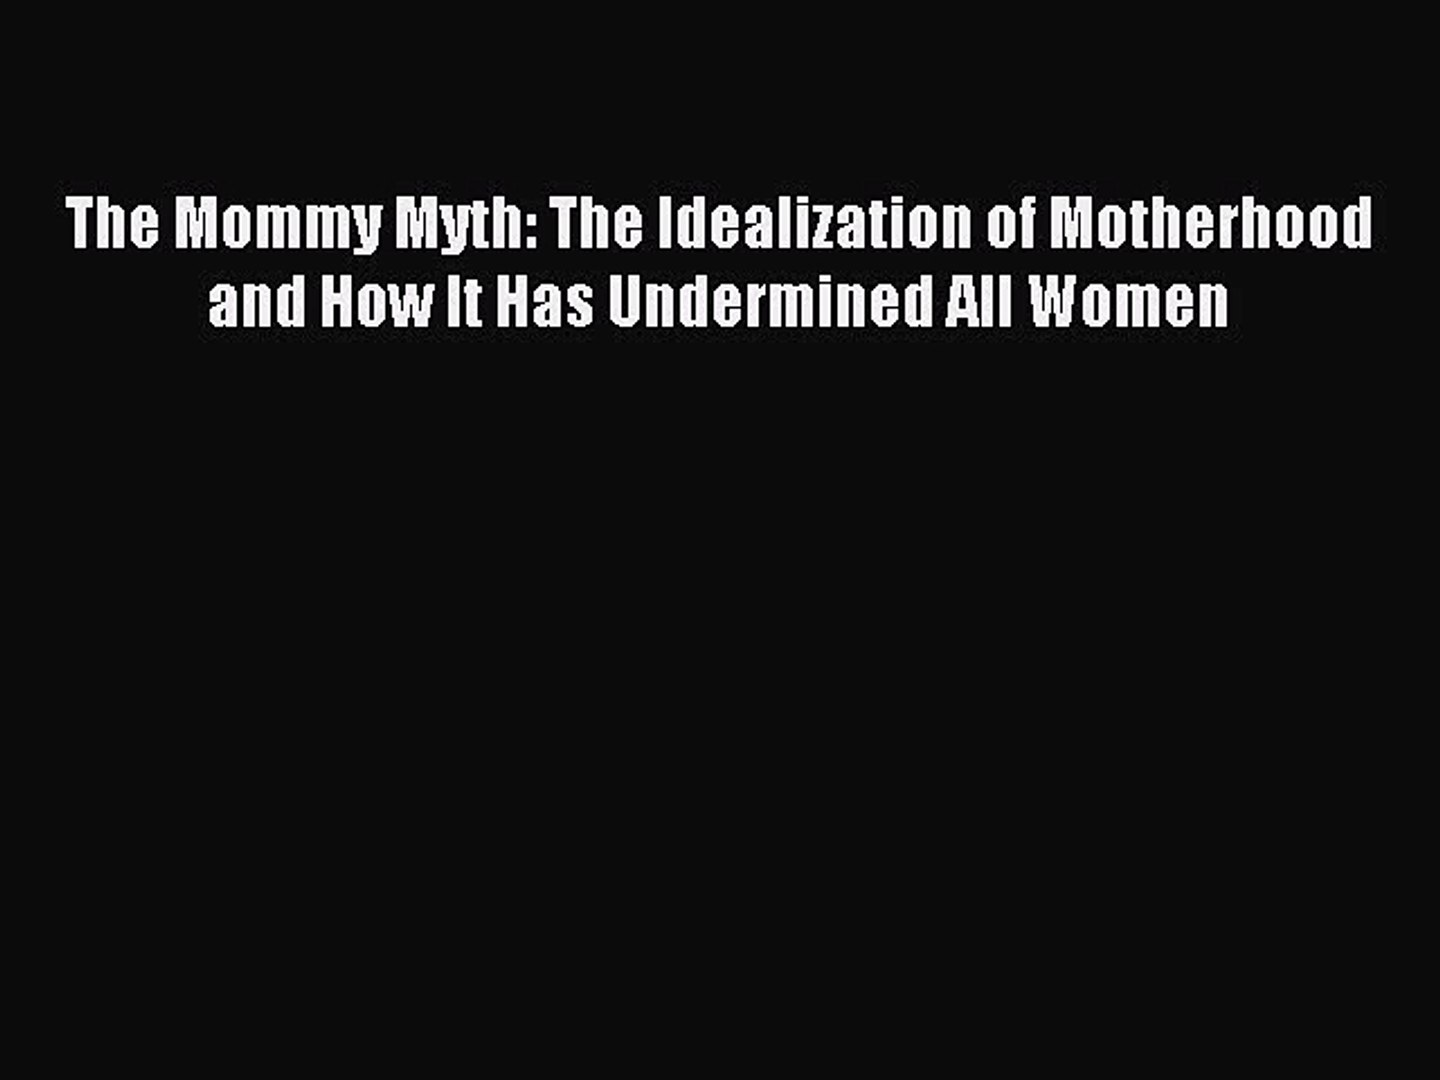 The Mommy Myth The Idealization of Motherhood and How It Has Undermined All Women